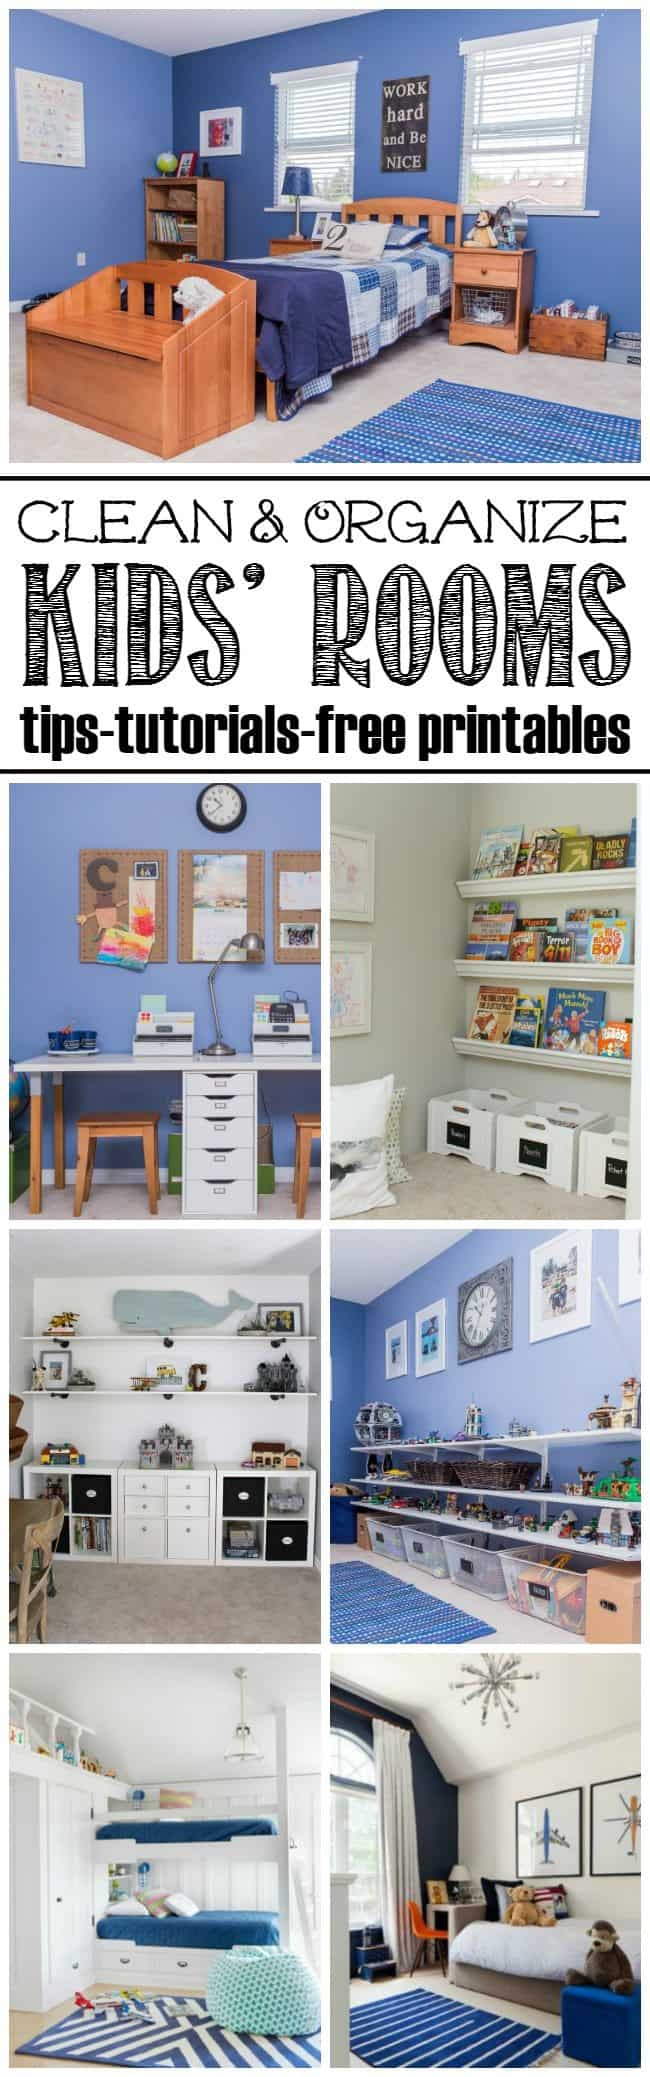 Clean Organize Kids Rooms Tips Tutorial Free